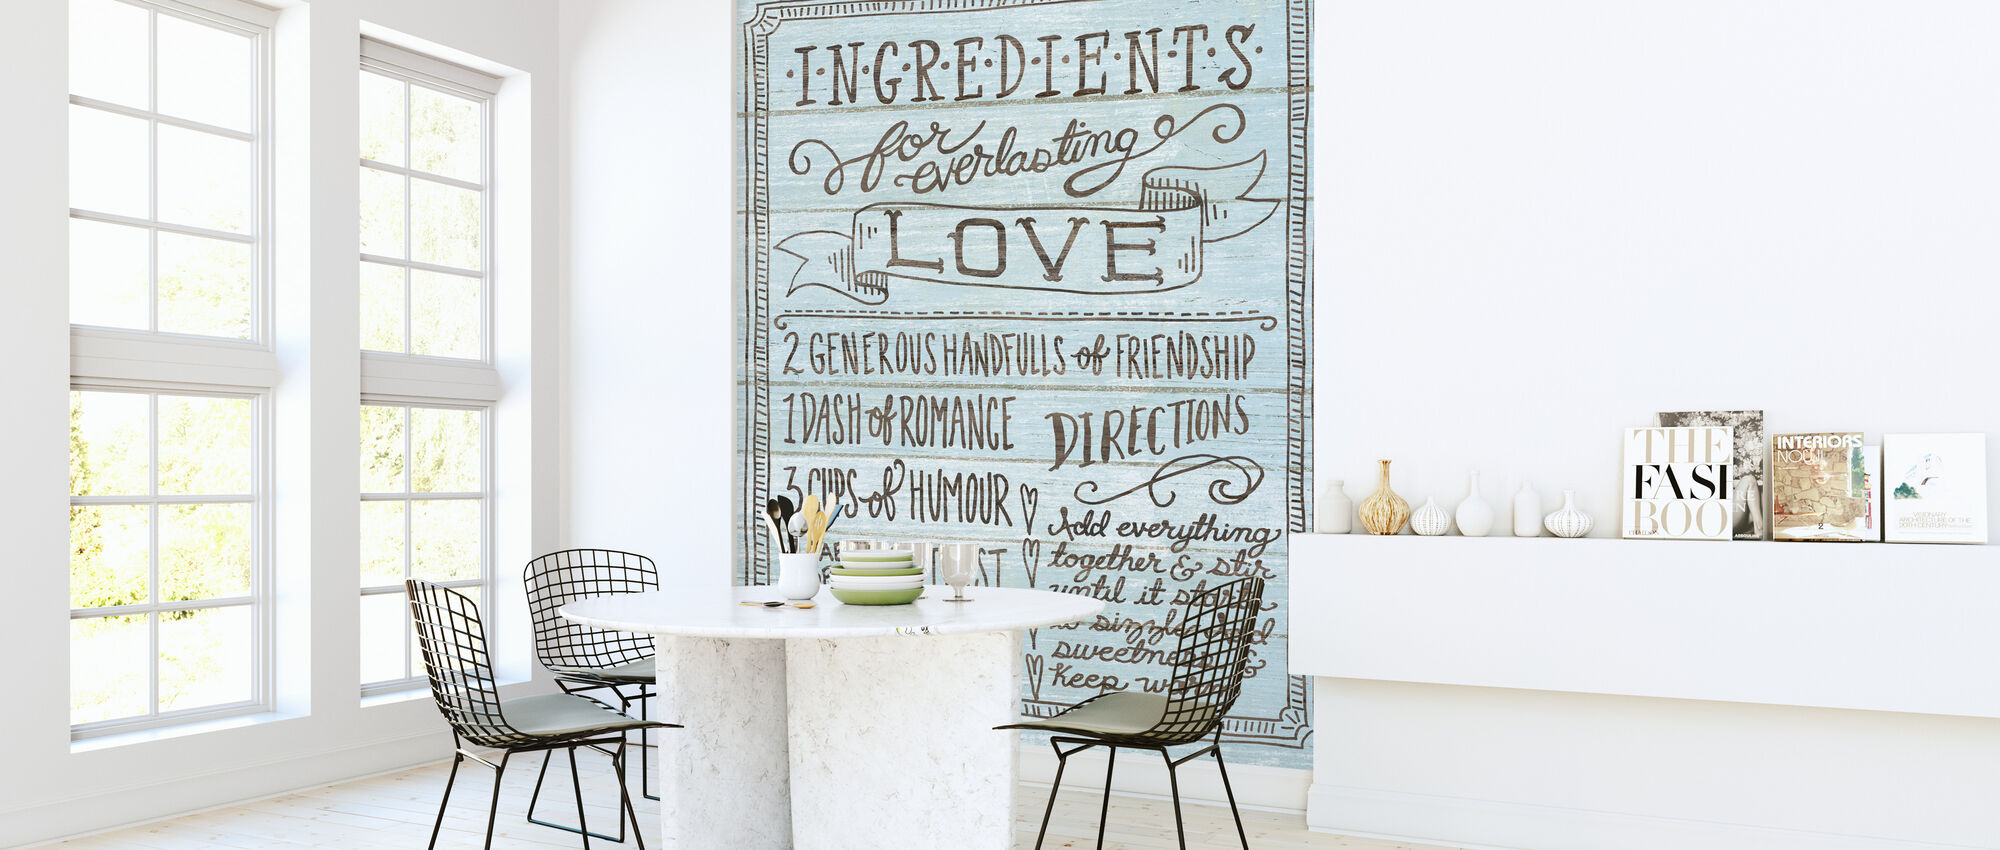 Ingredients for Life I Blue - Wallpaper - Kitchen